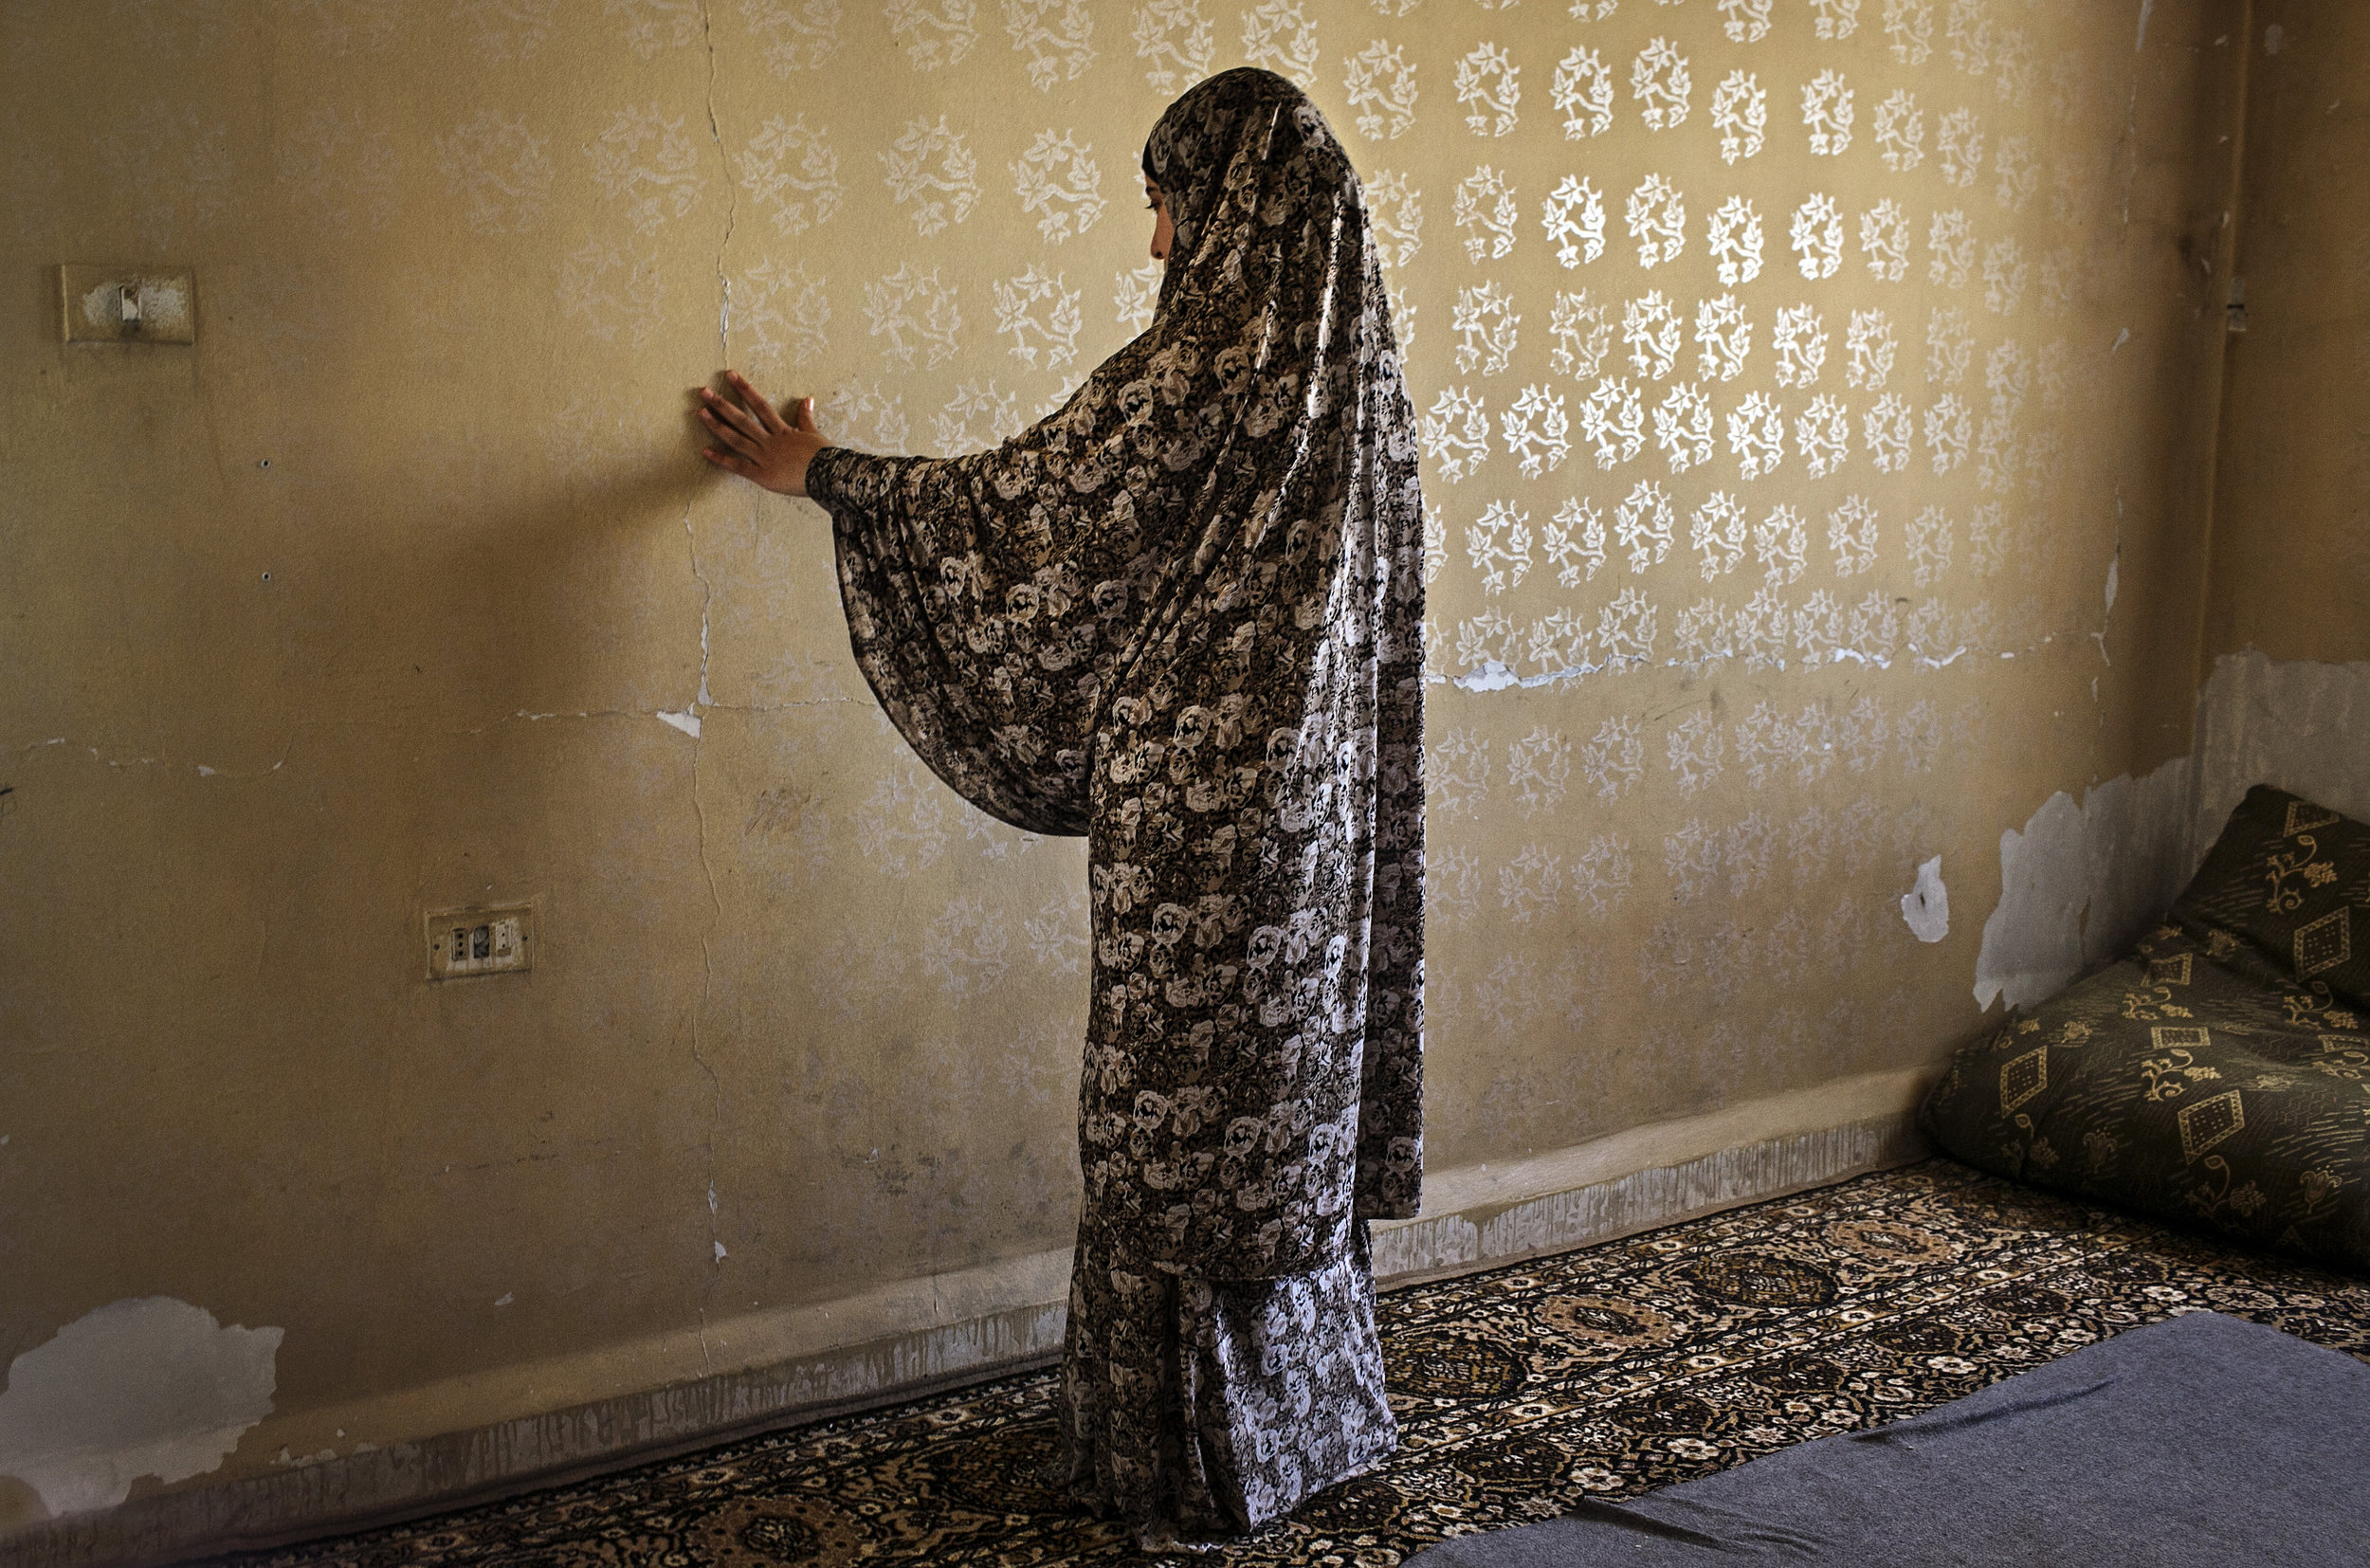 Jordan, 2013